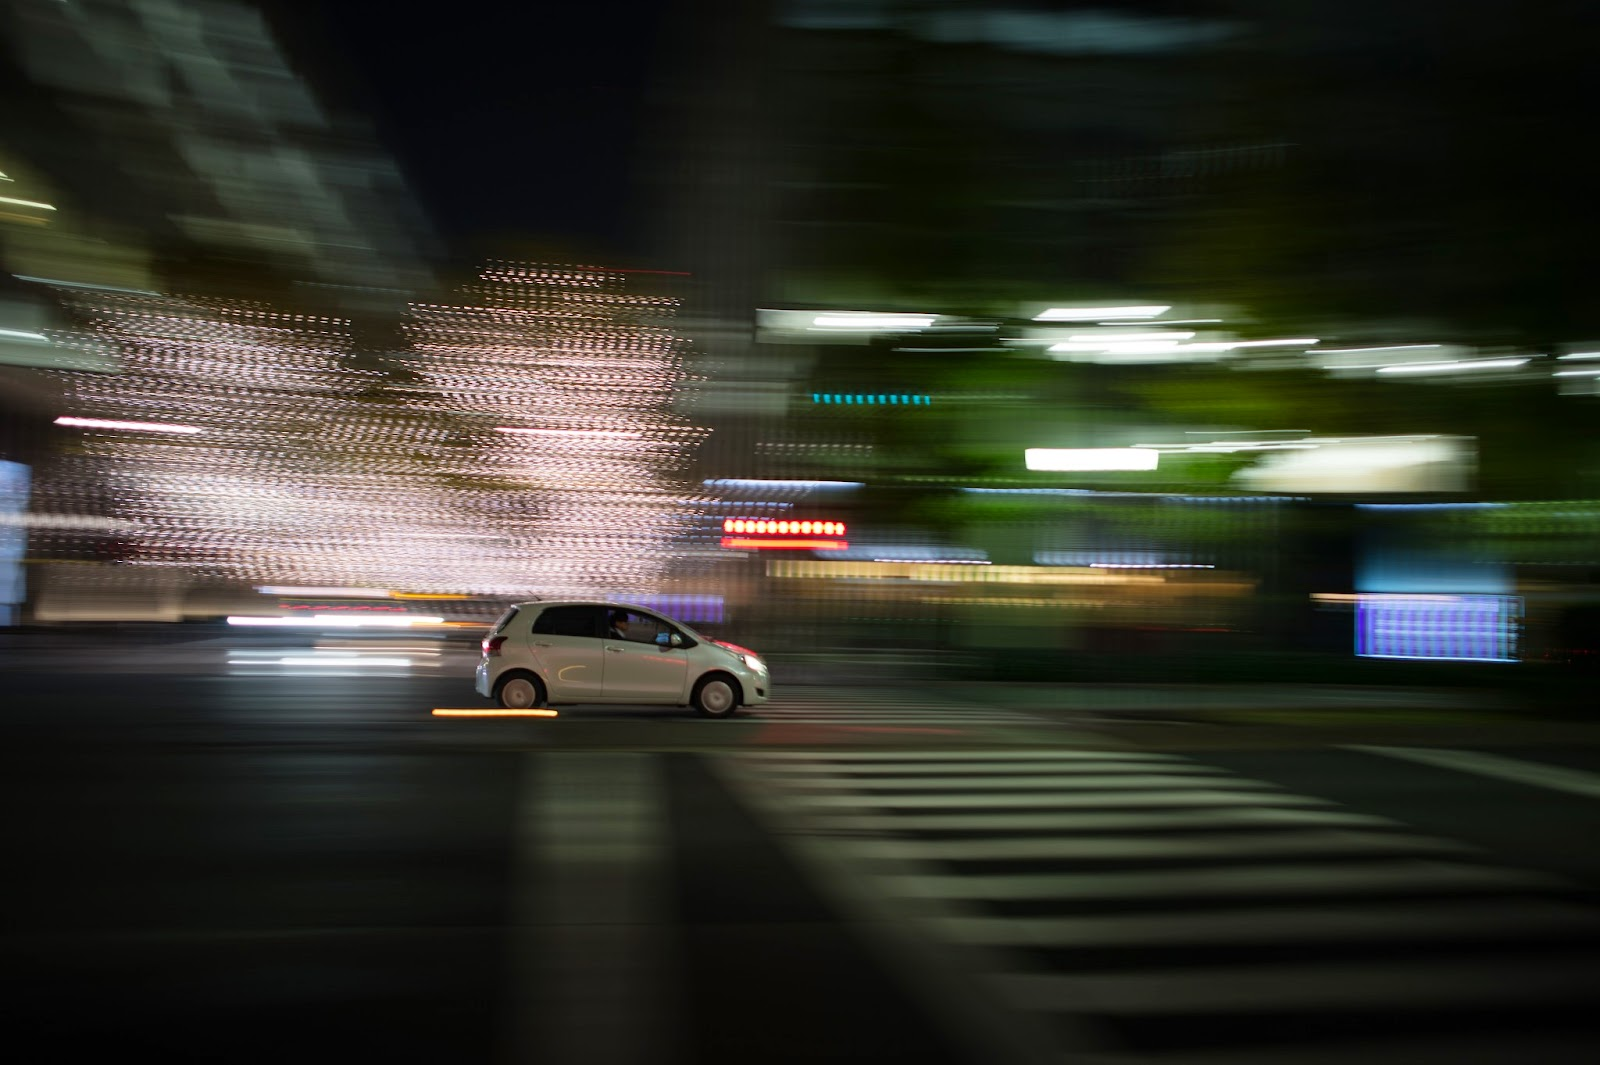 & Tips on photography: How to take panning shots